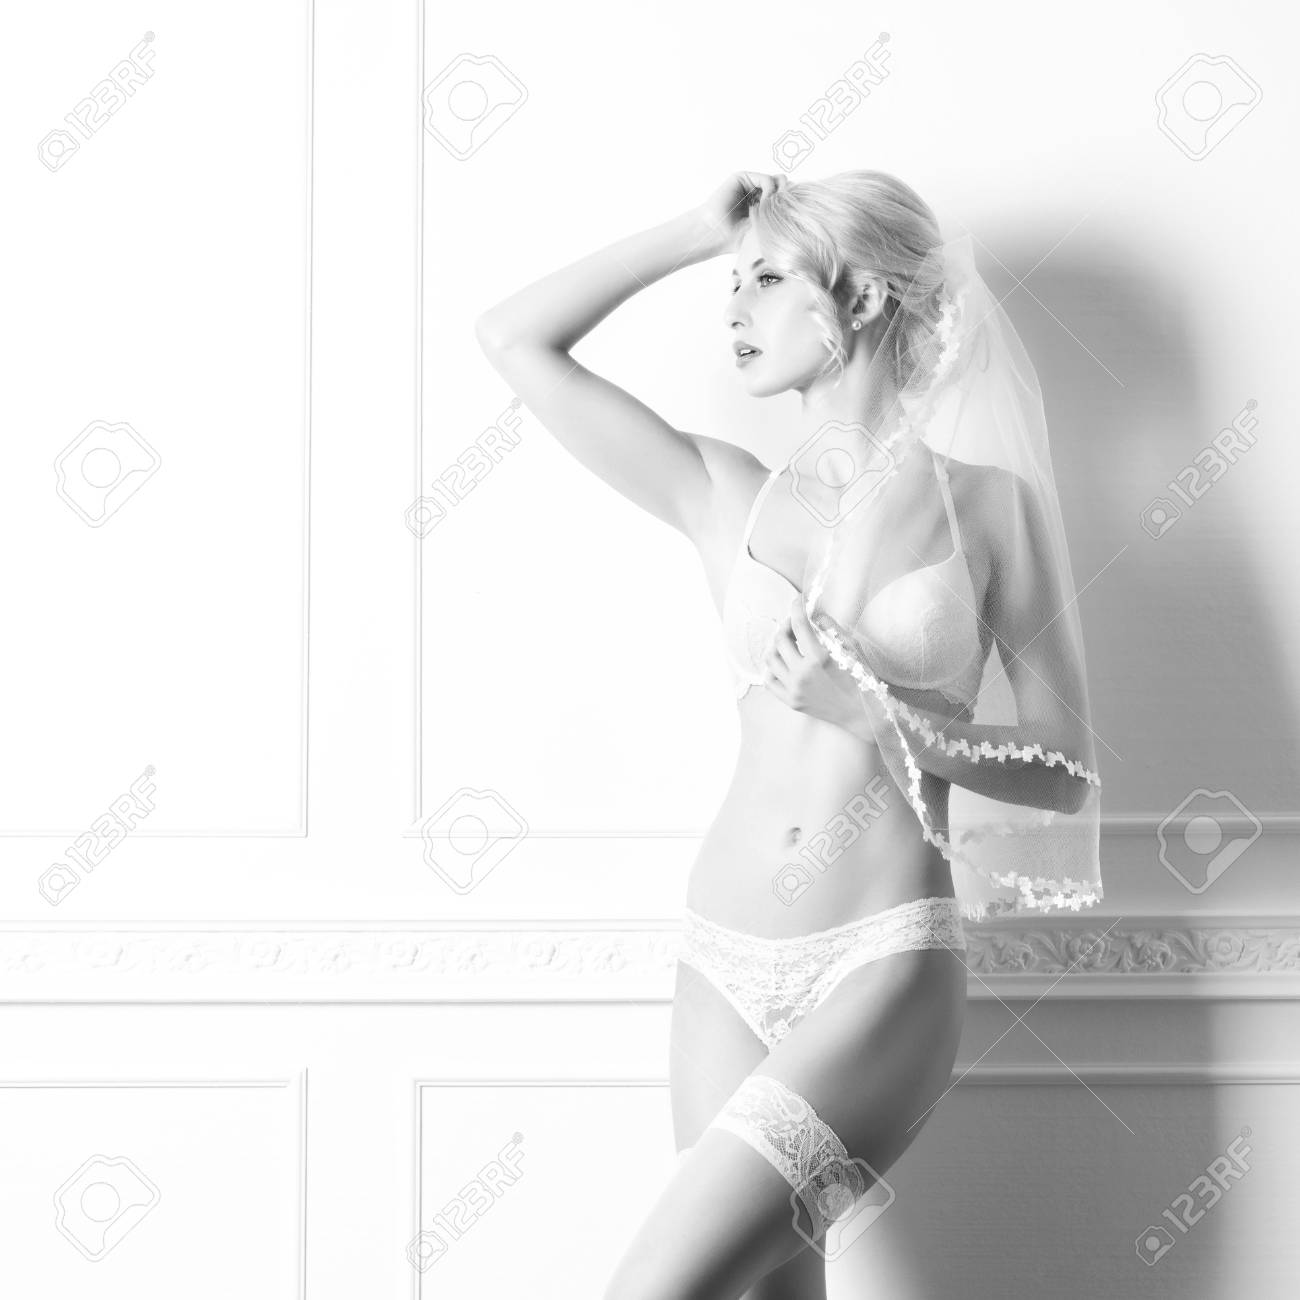 37f7b7697560 Black and white photo of sensual and beautiful young woman in a bridal  lingerie over retro